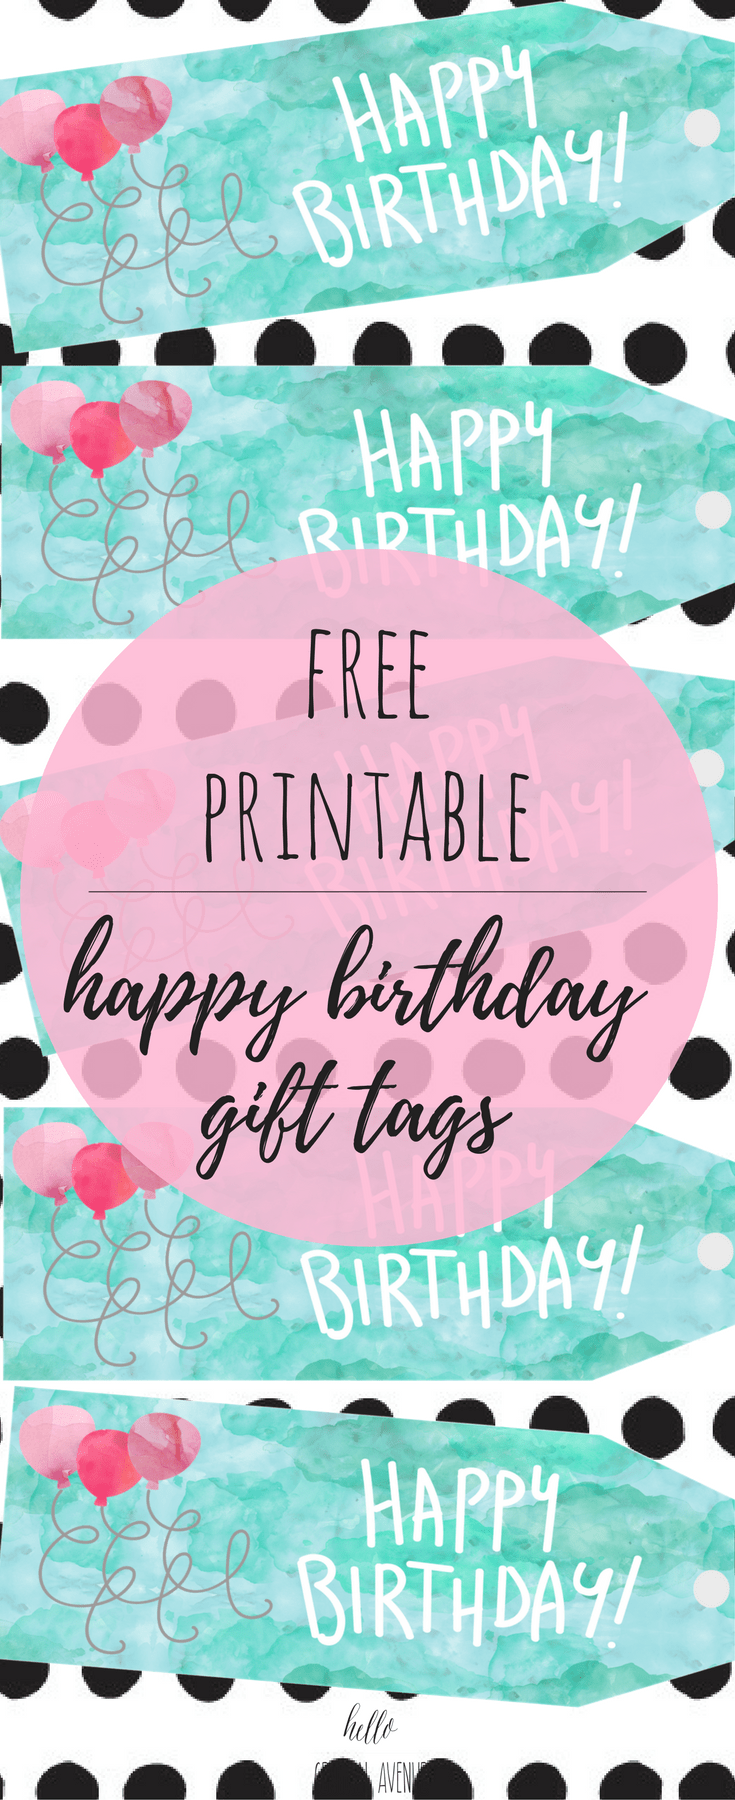 Free Watercolor Happy Birthday Gift Tags Hello Central Avenue